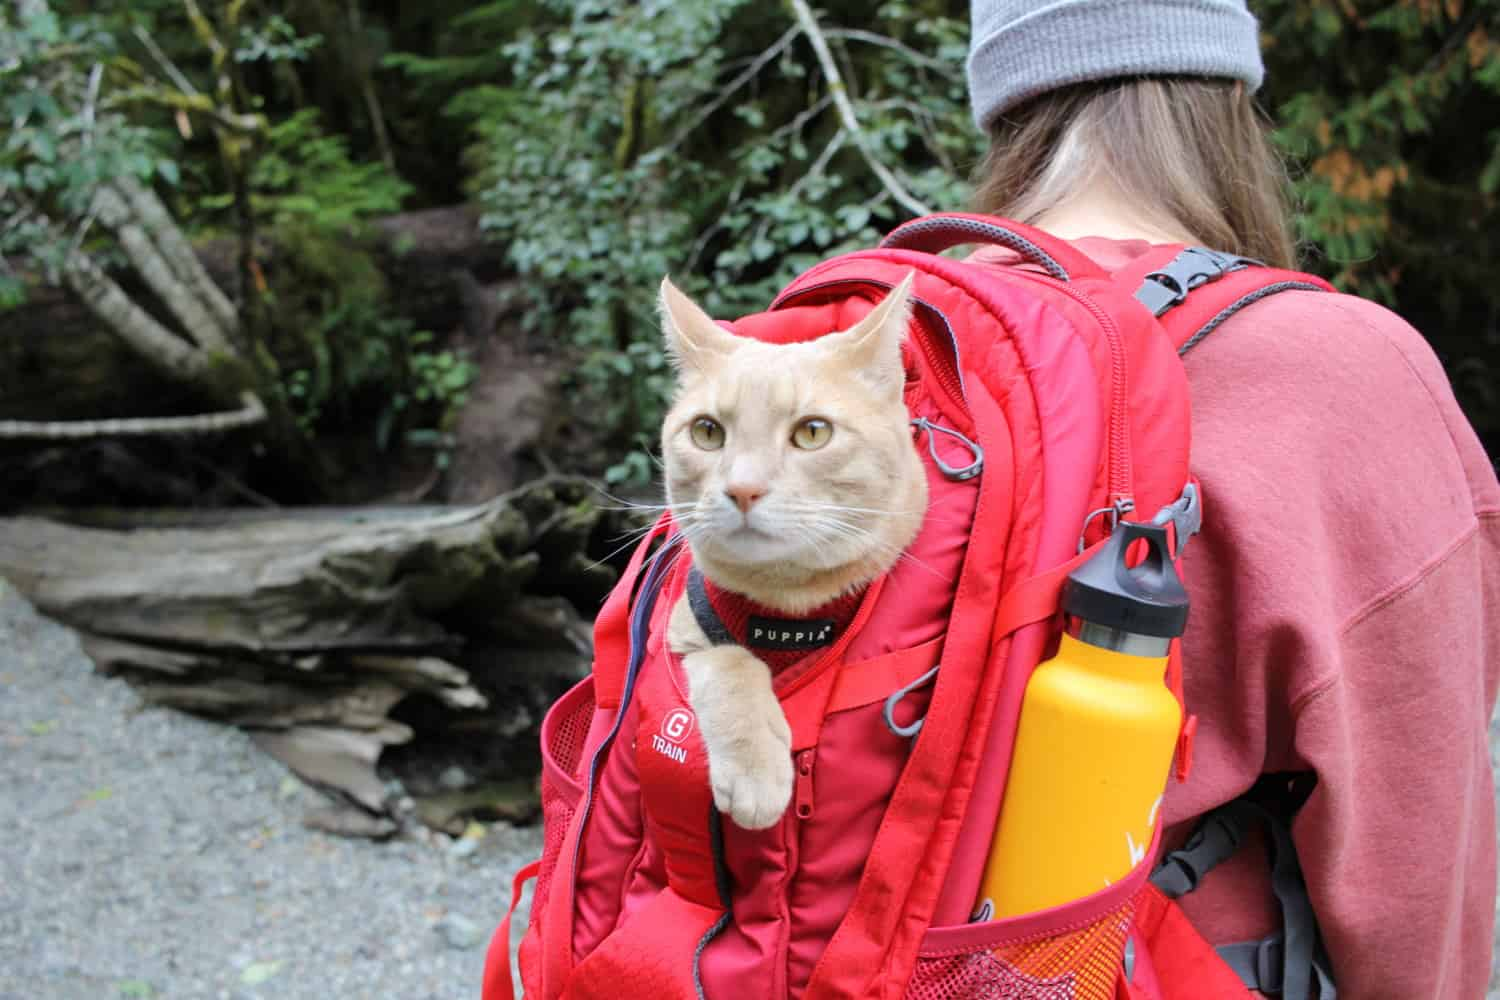 Fish the cat with his head poking out of a backpack